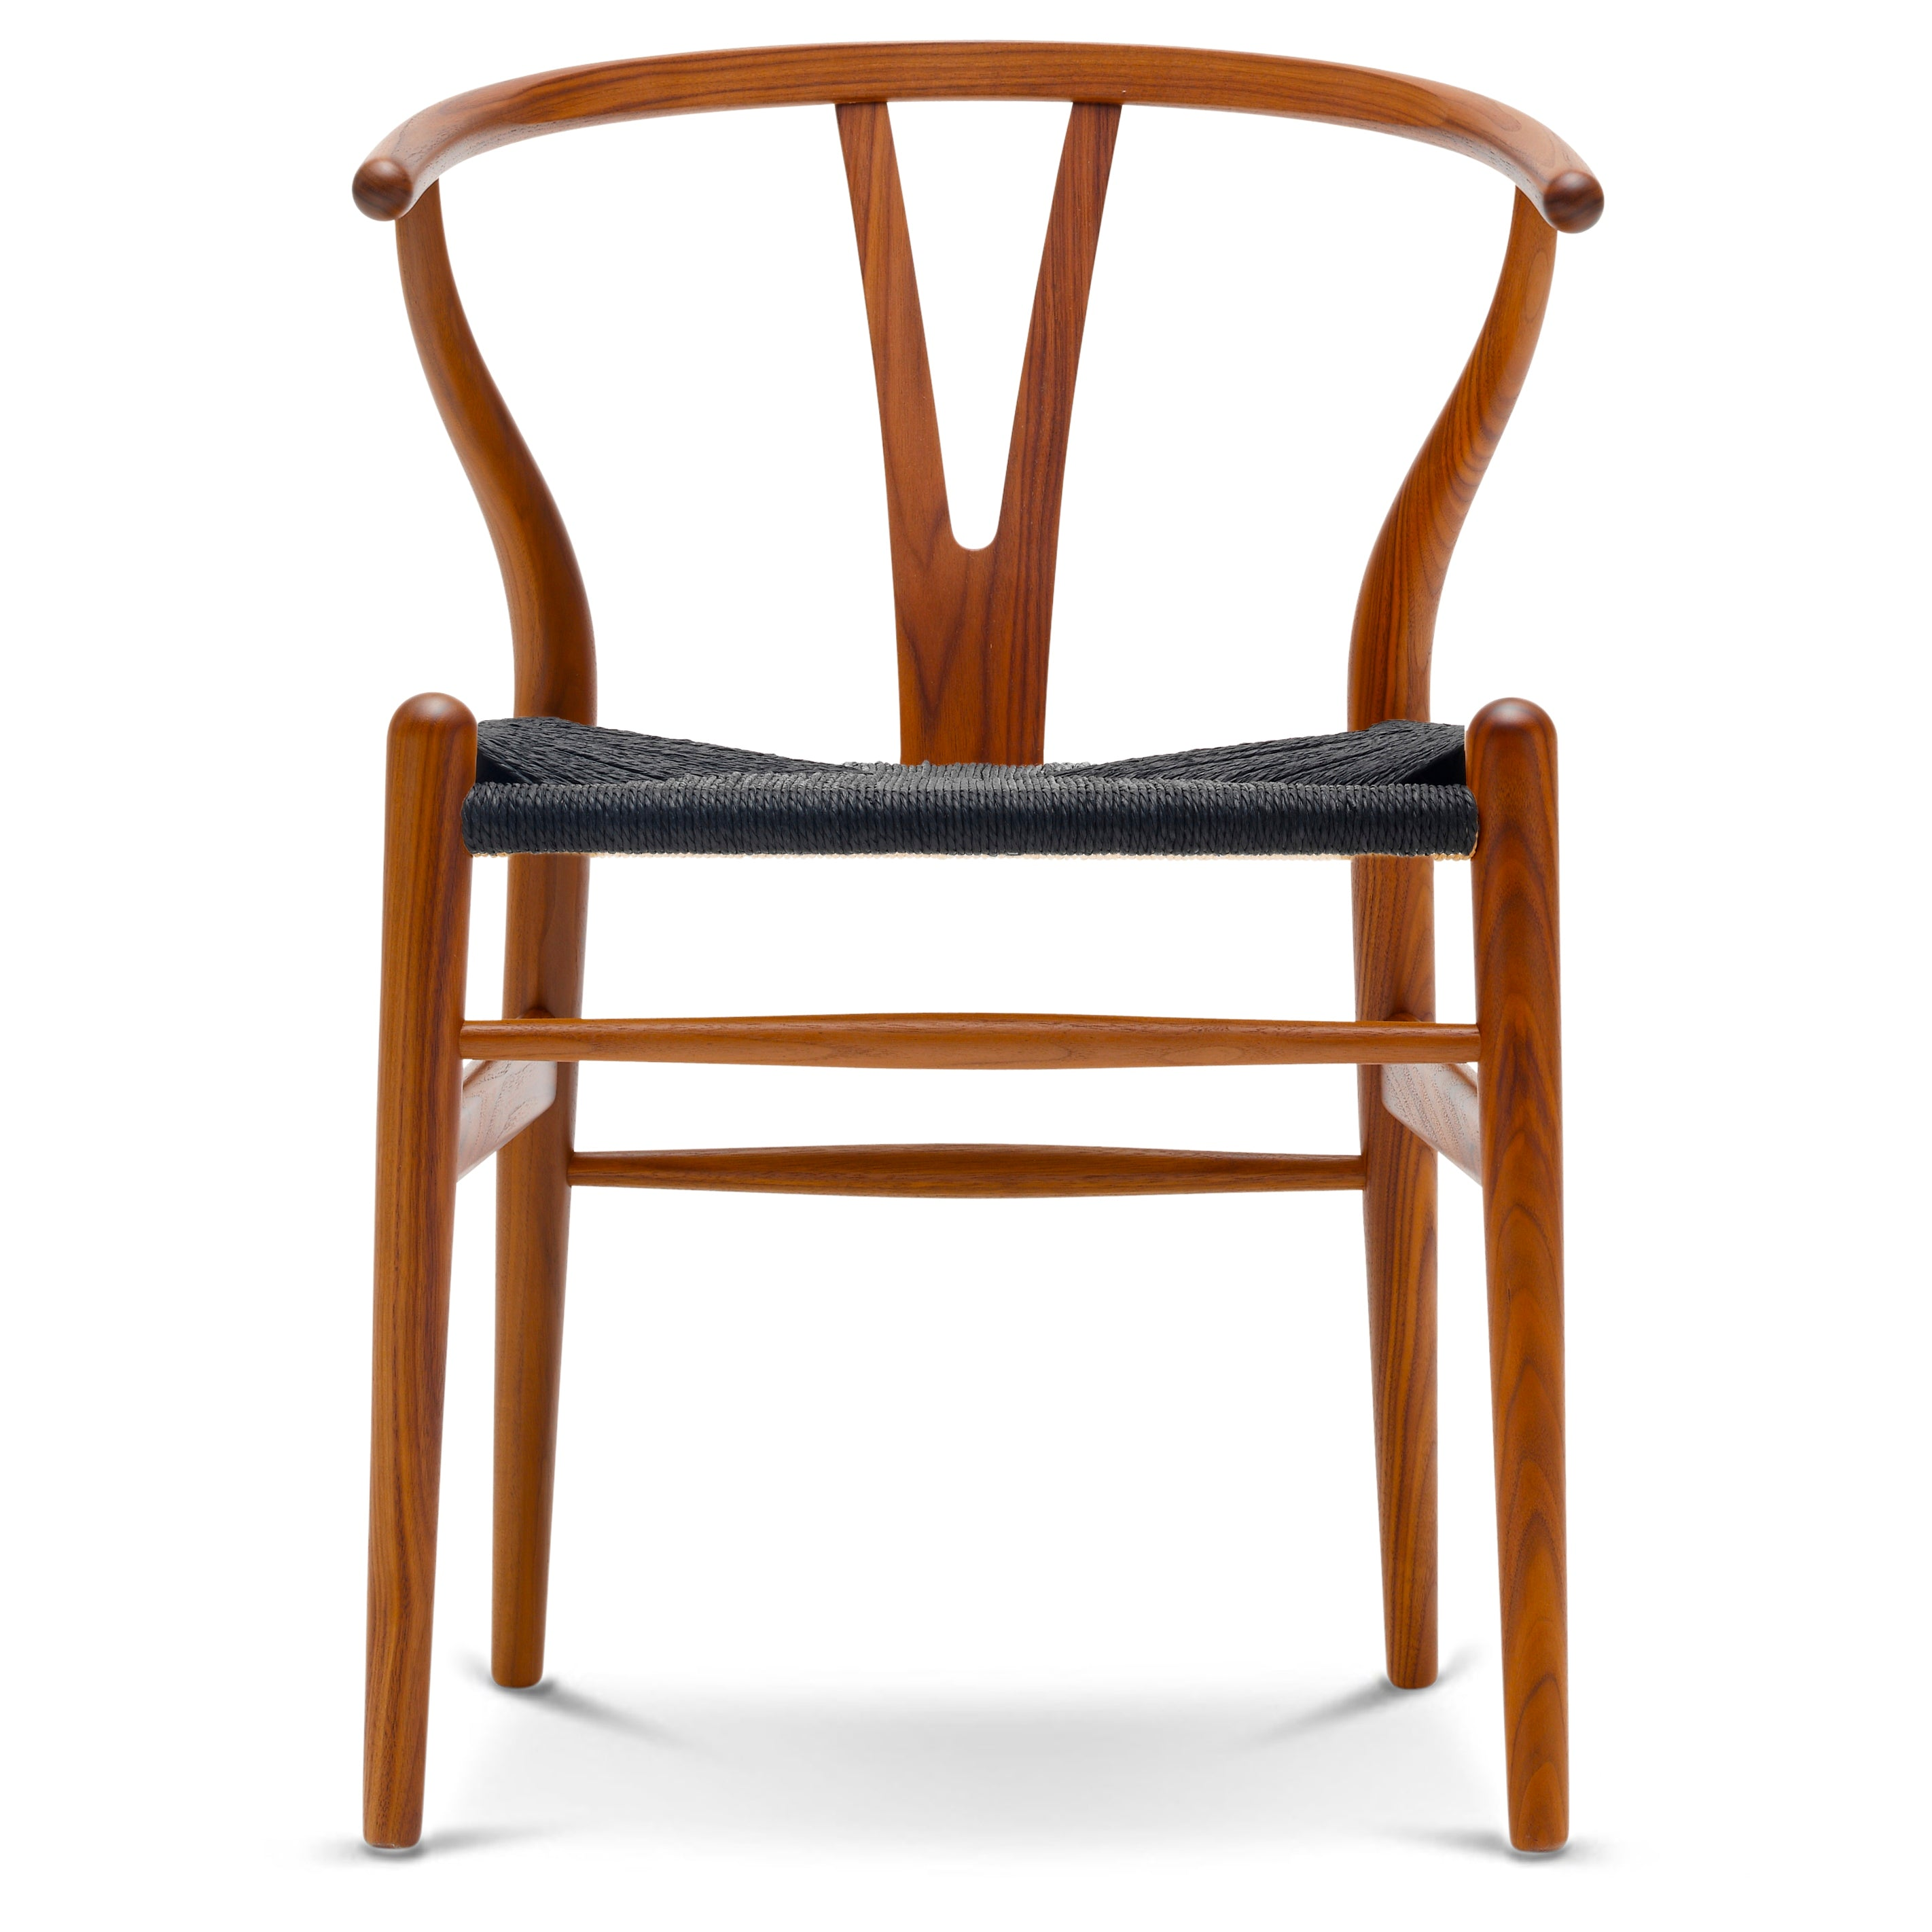 CARL HANSEN & SØN | CH24 Wishbone Chair | Hans J. Wegner | Walnut frame | Available in 6 weeks